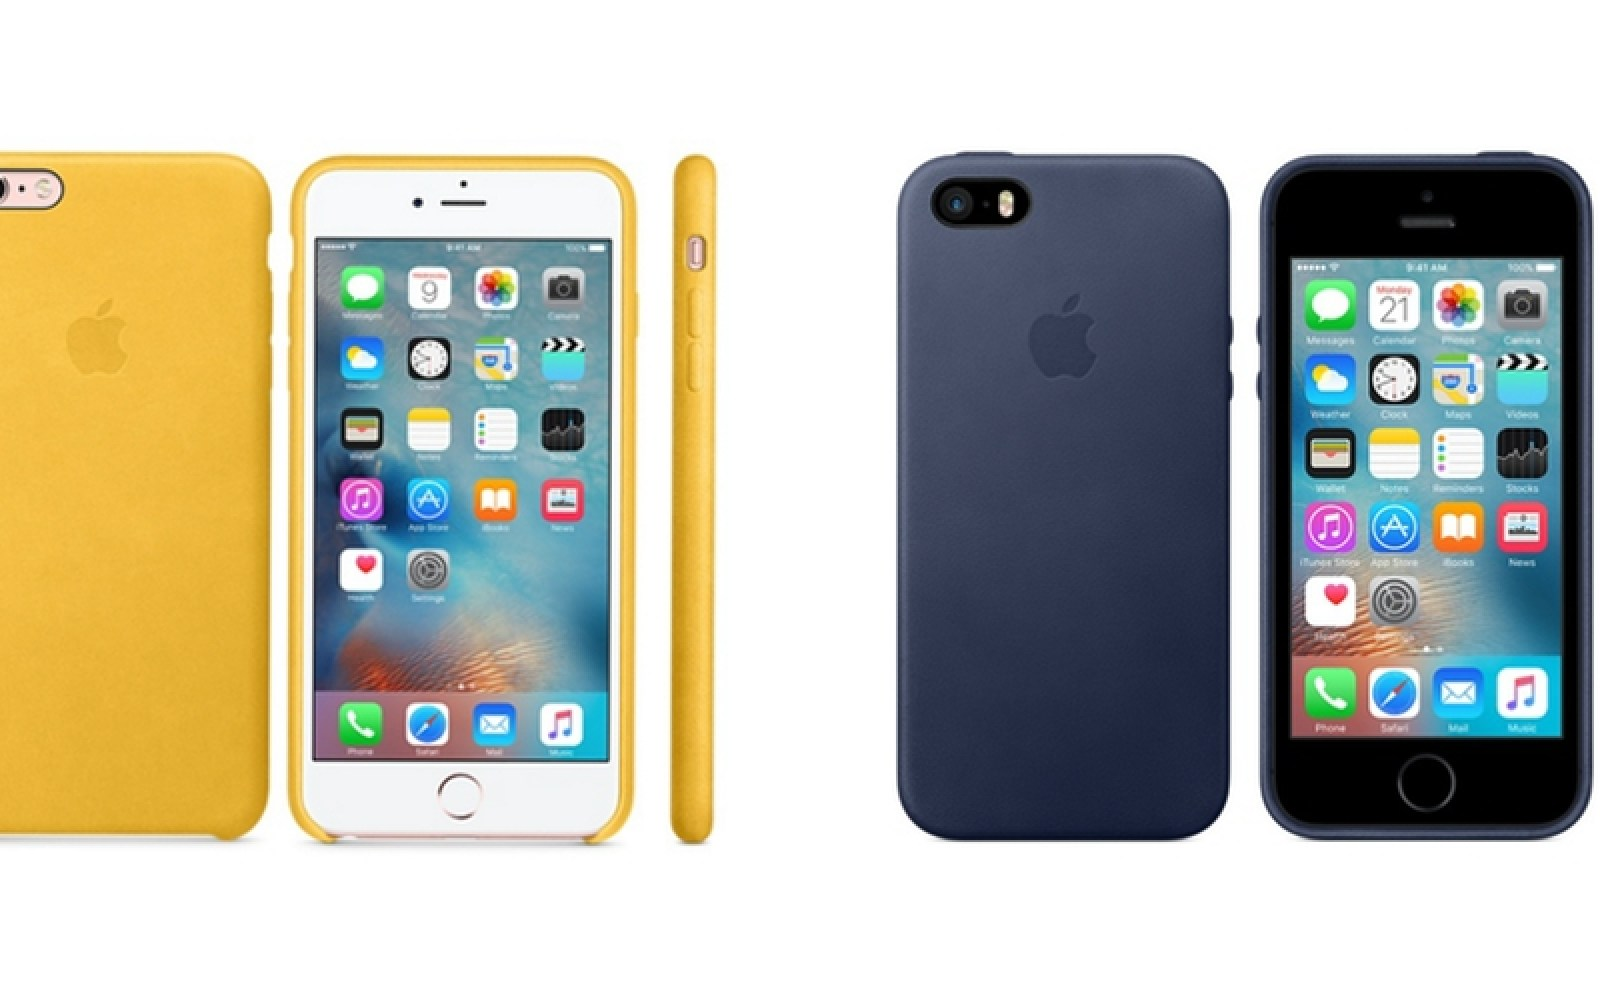 Apple expands iPhone silicone/leather case options, confirms iPhone SE cases will fit 5/5s